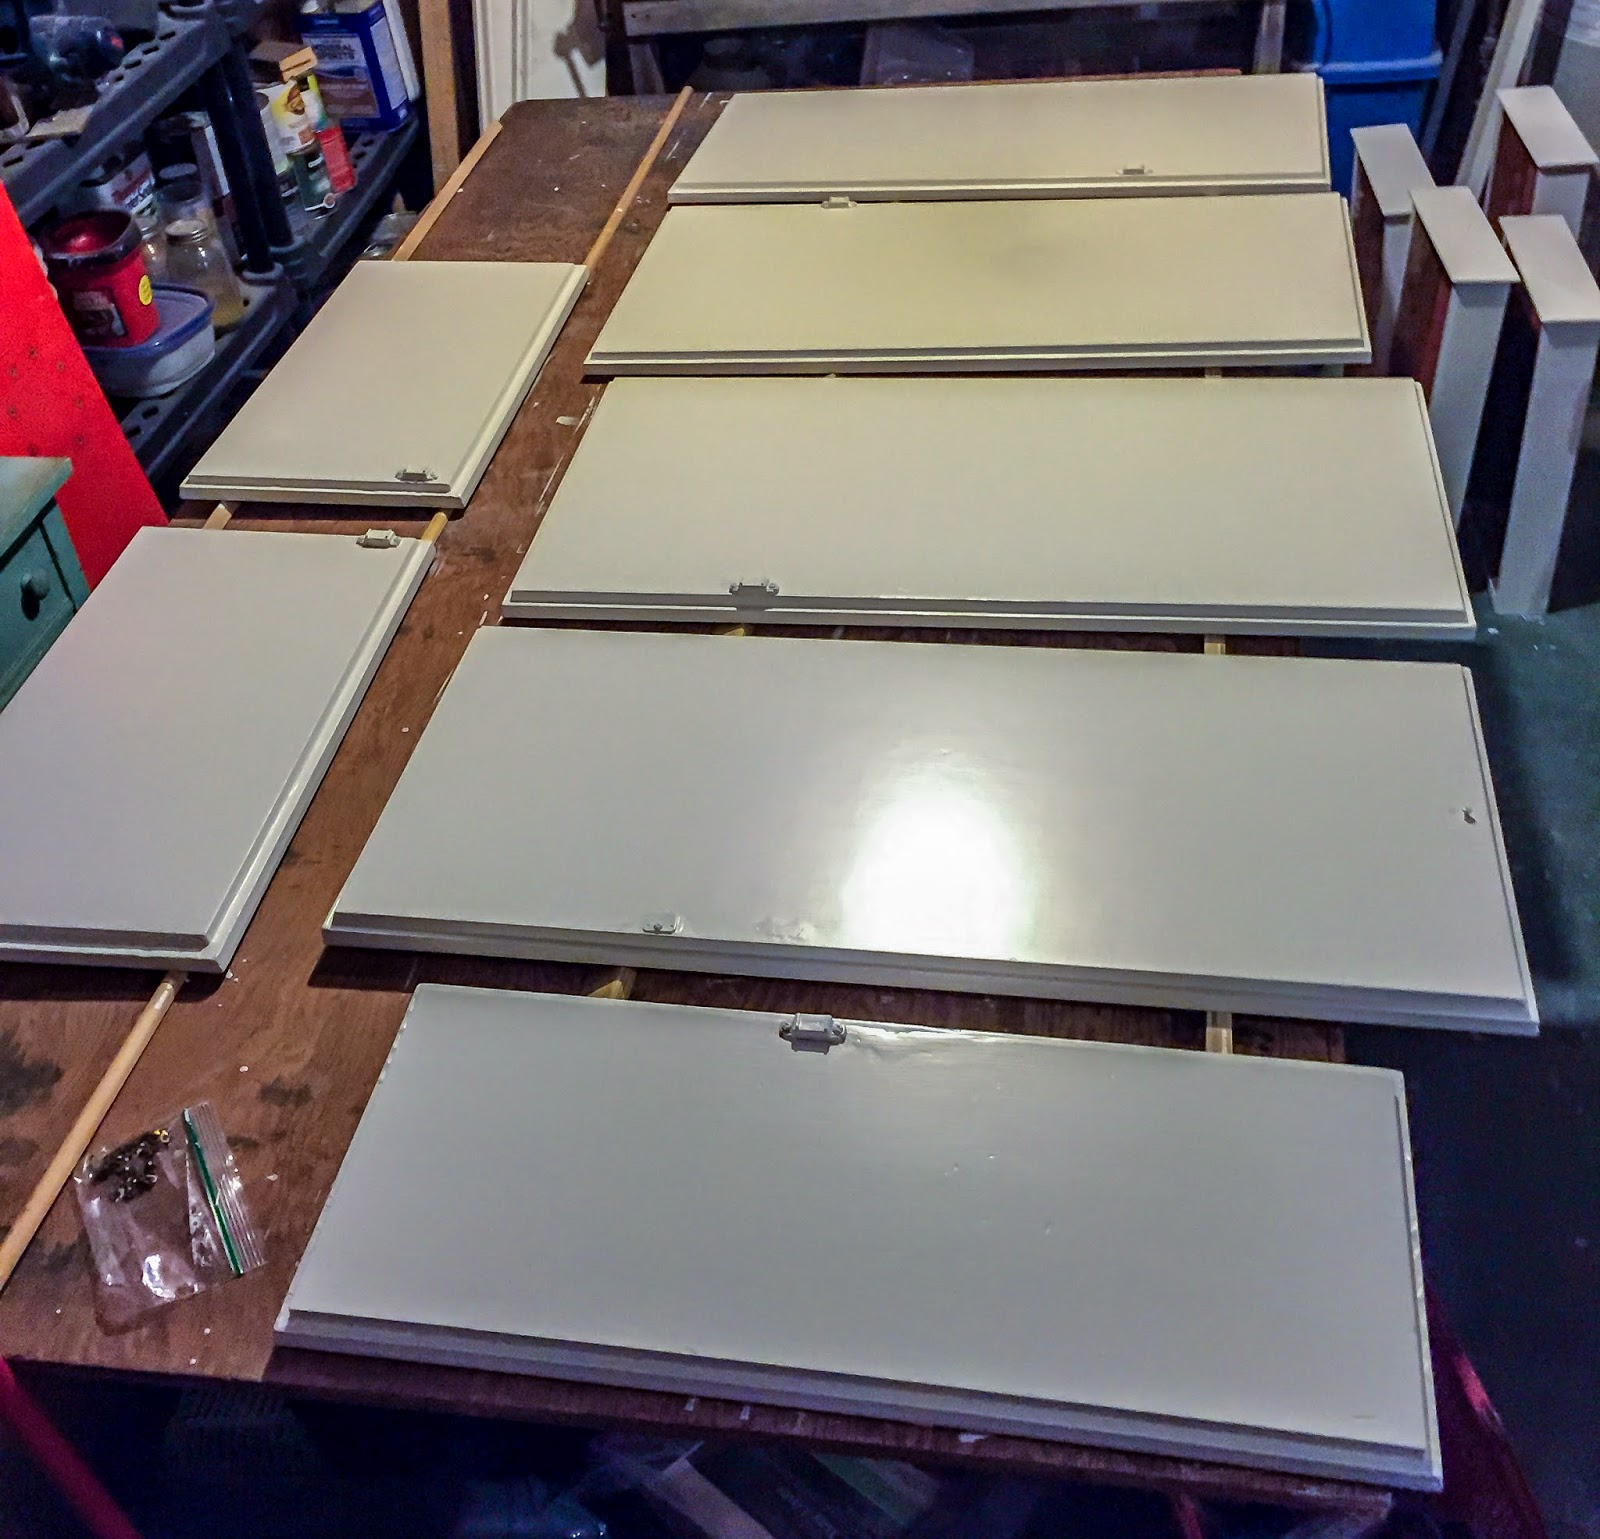 Refacing Old Kitchen Cabinets: Old House Restorations